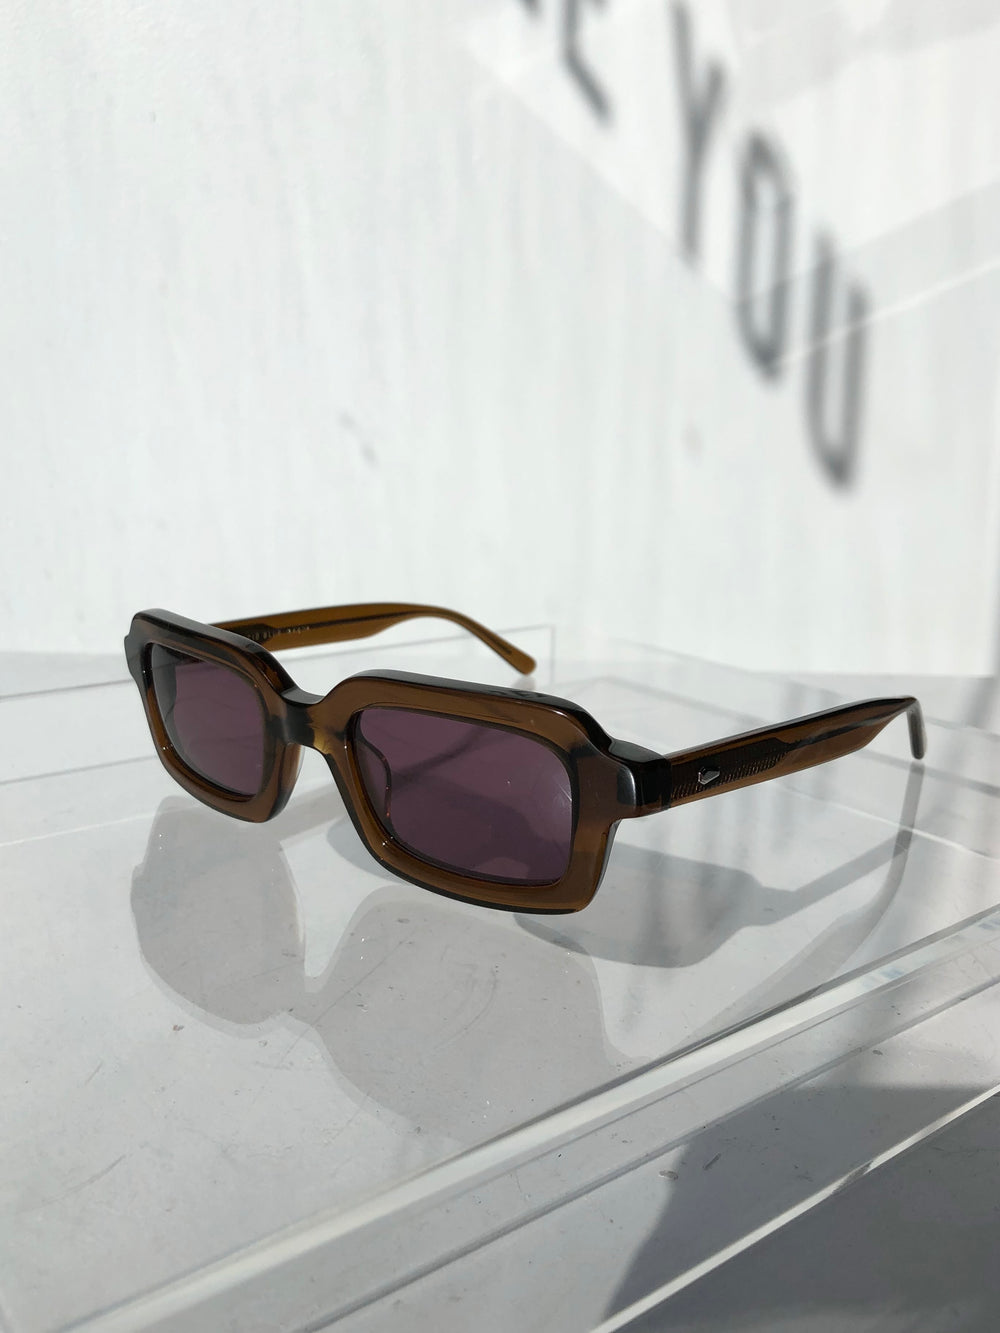 Crap Eyewear - The Lucid Blur - Crystal Hemp & Plum